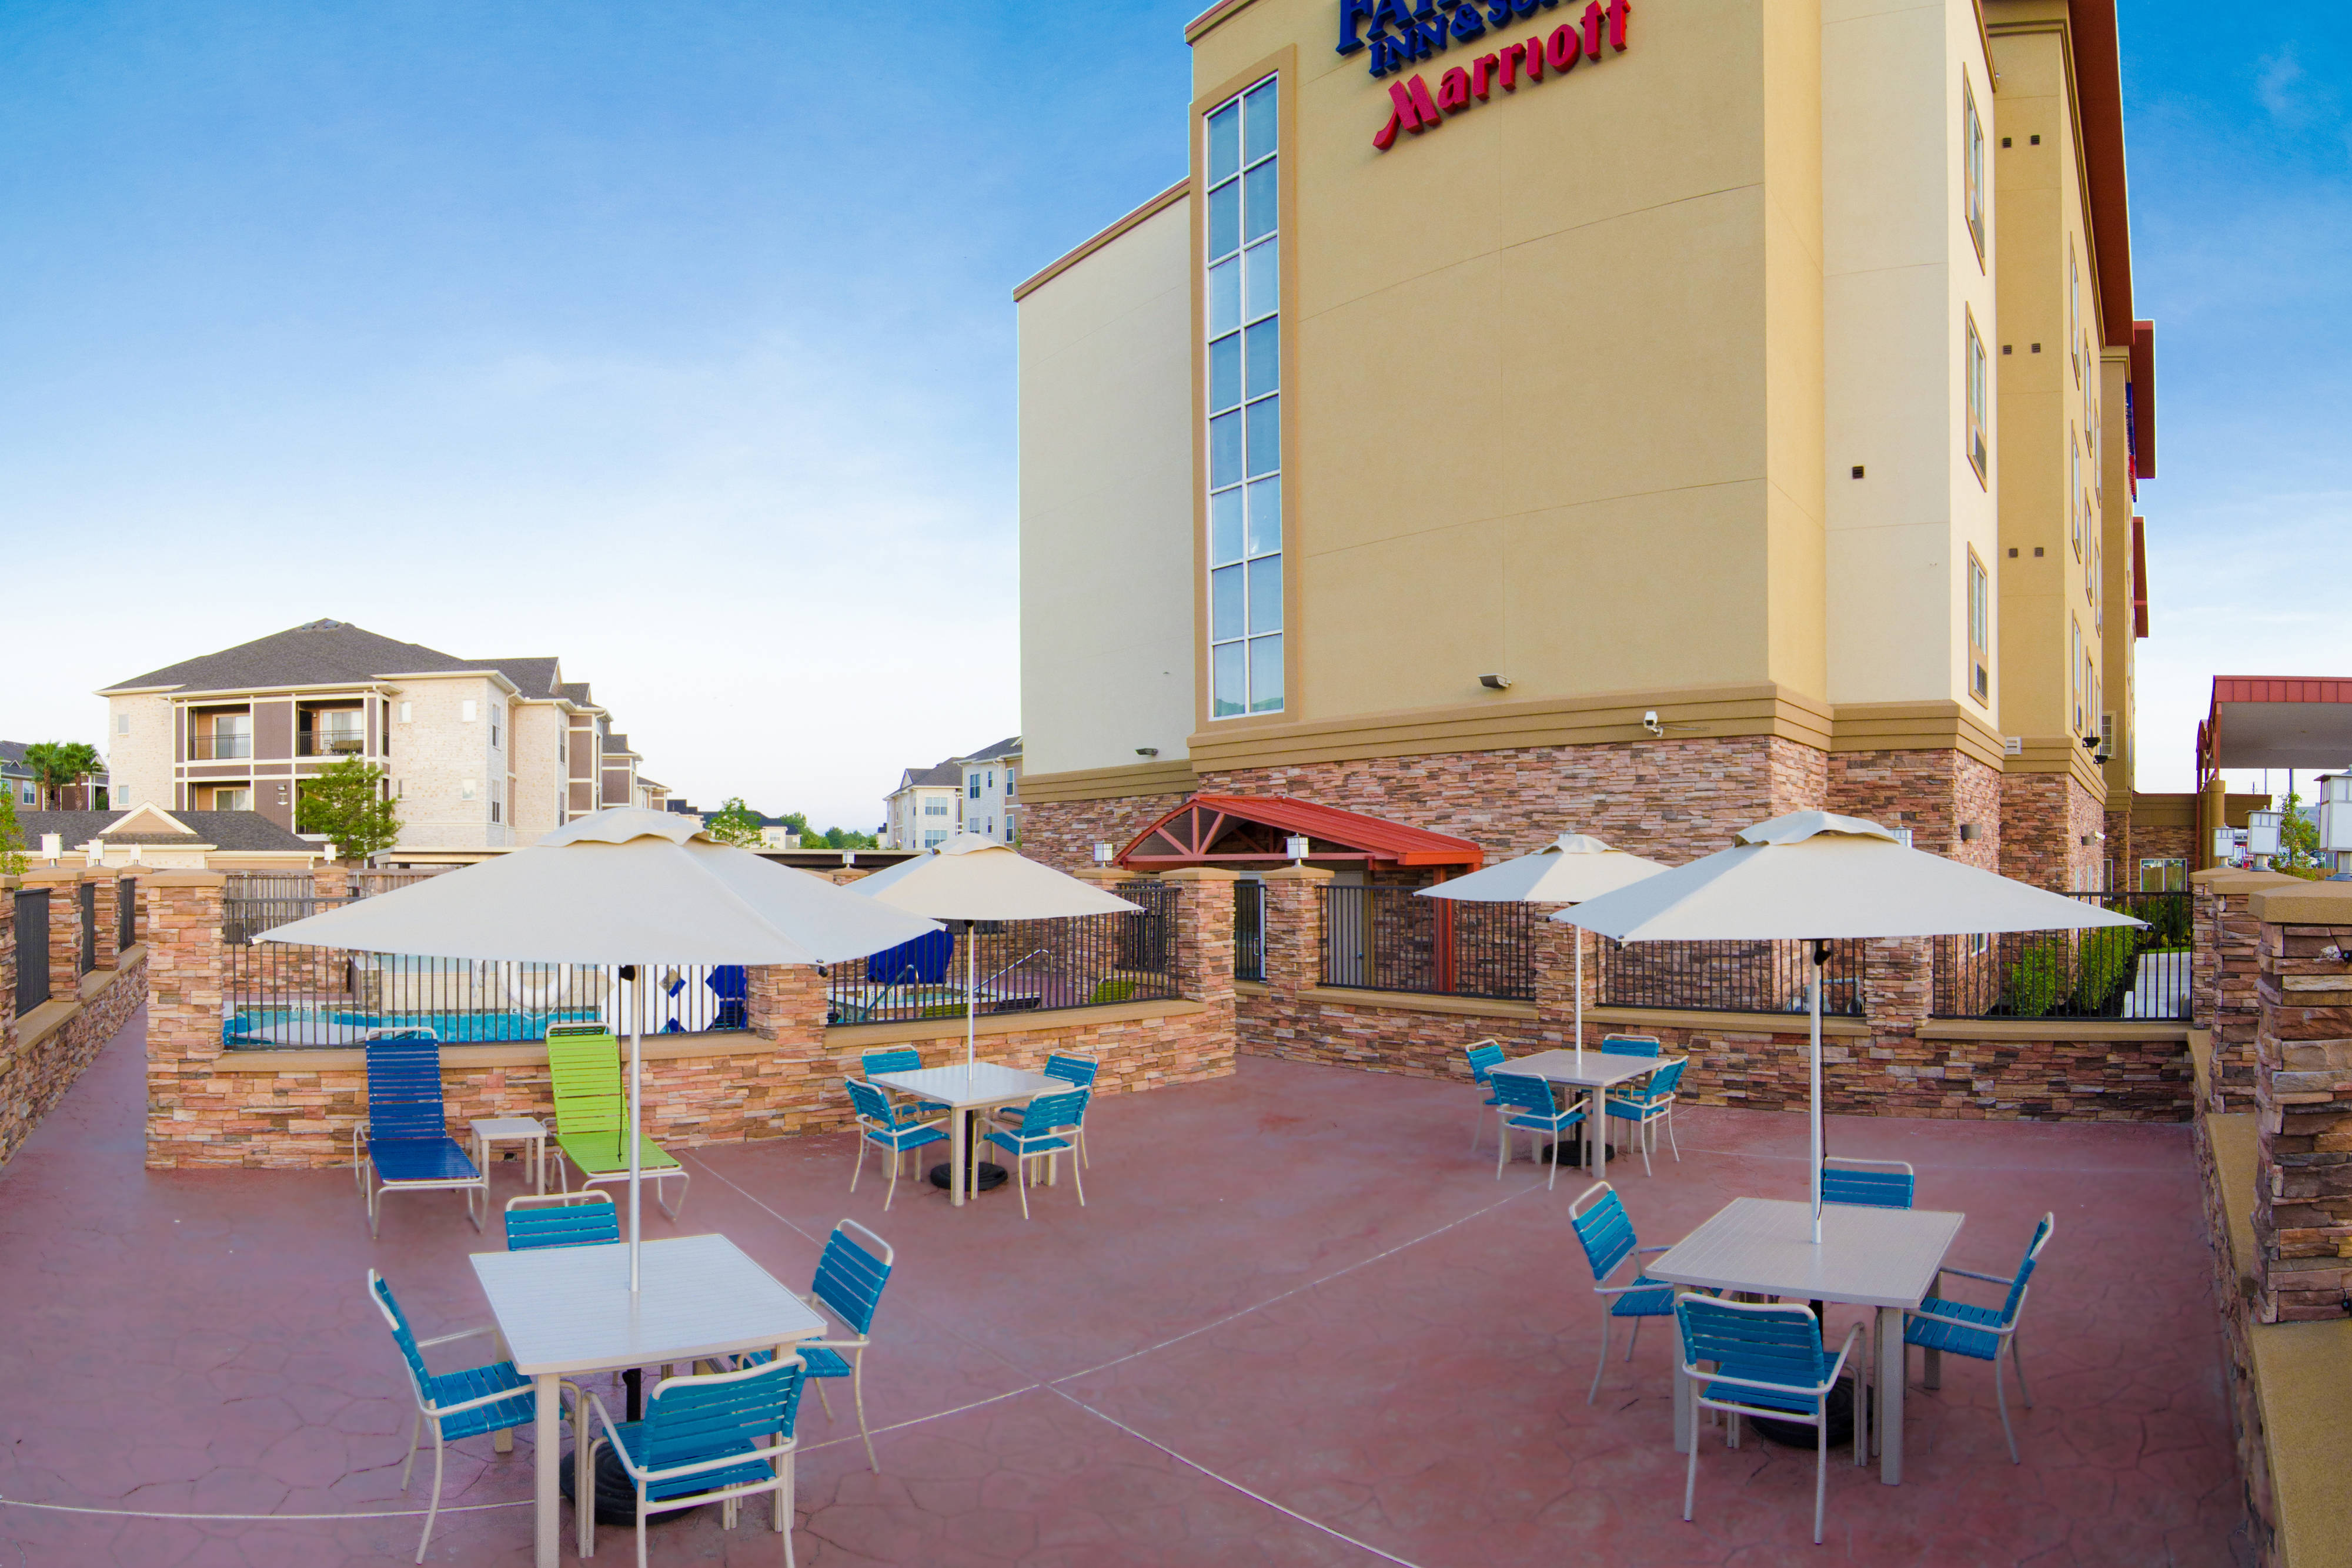 Fairfield Inn And Suites By Marriott Houston The Woodlands South